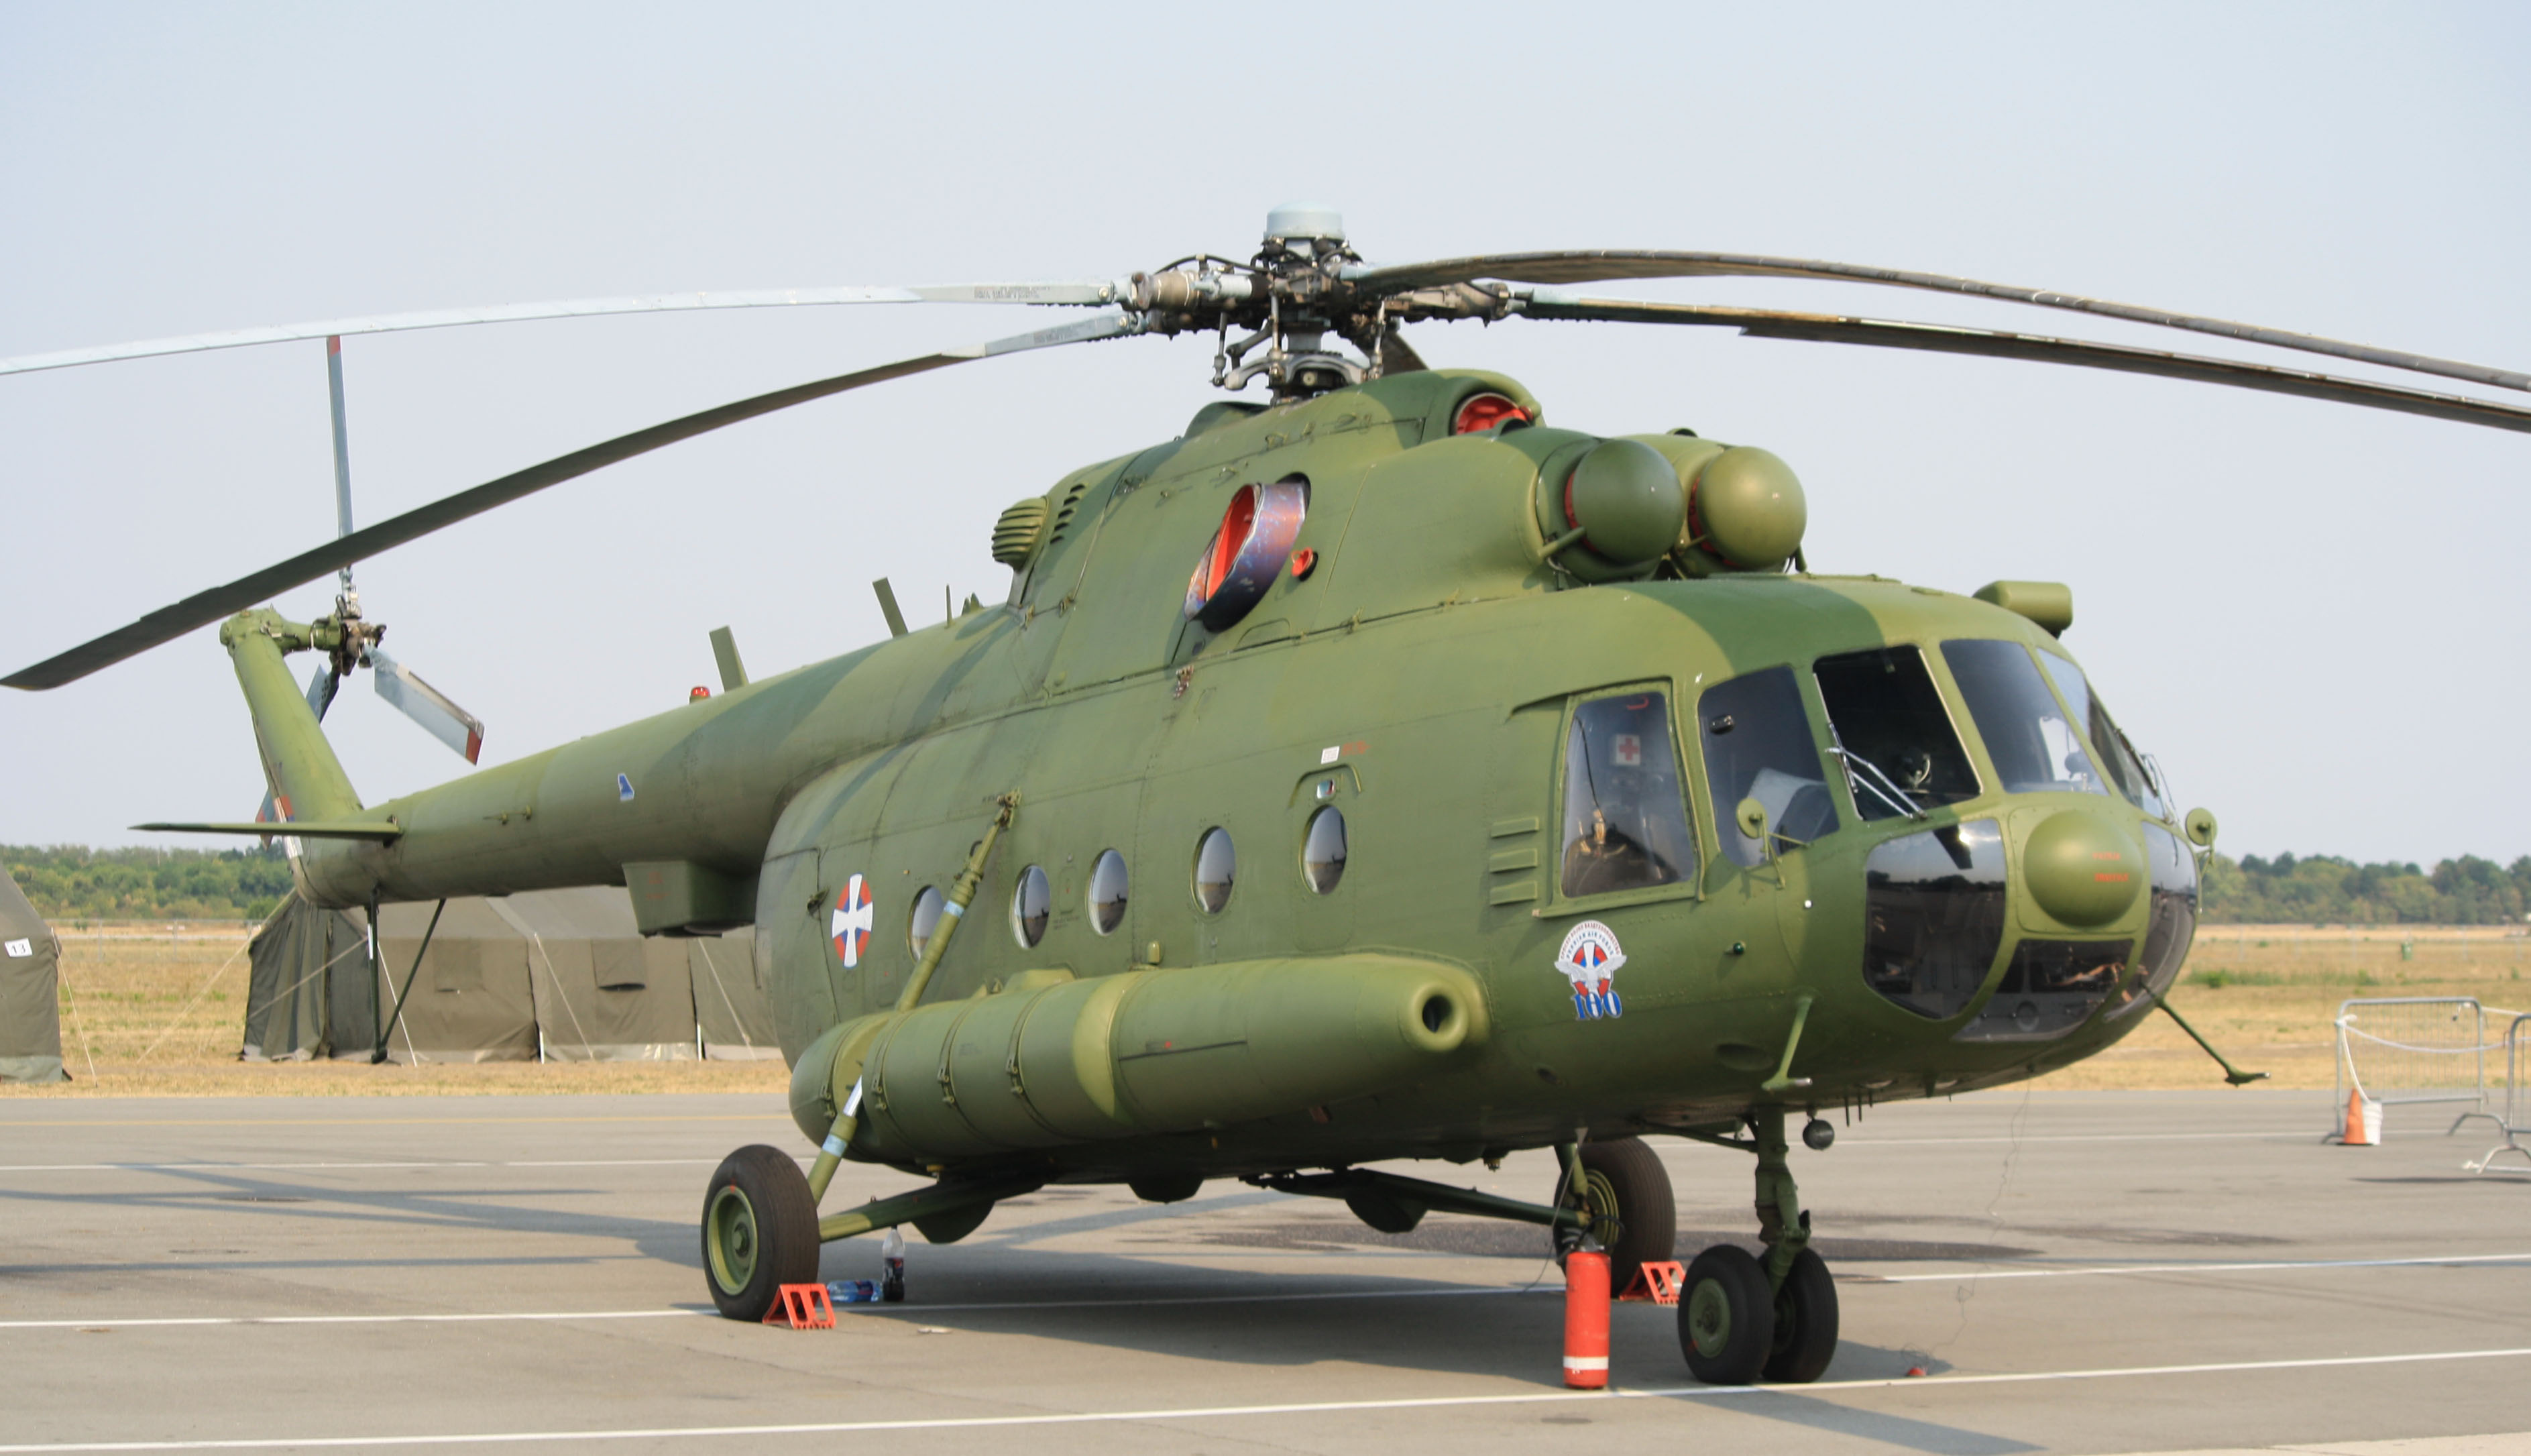 mi 17 helicopters with File Mi 17 12551 V I Pvo Vs  September 01  2012 on Mil Mi 8 additionally 1058970 besides Watch besides News 78597 moreover File Mi 8 amtsh  52   14225949458.